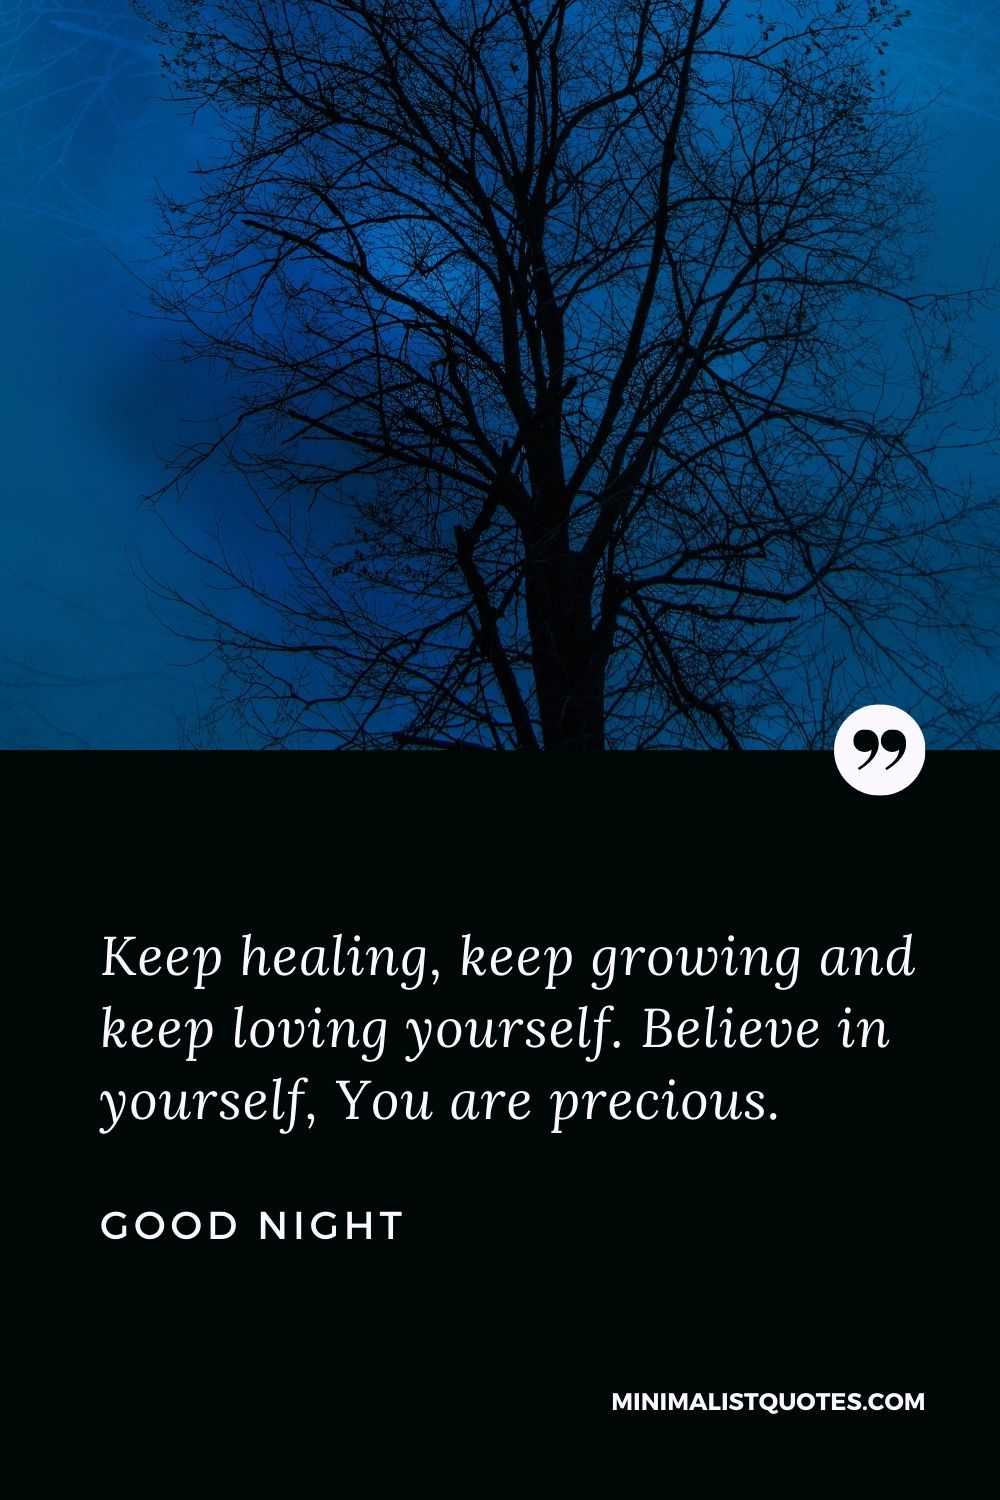 Good Night Wish & Message With Image: Keep healing, keep growing and keep loving yourself. Believe in yourself, You are precious.